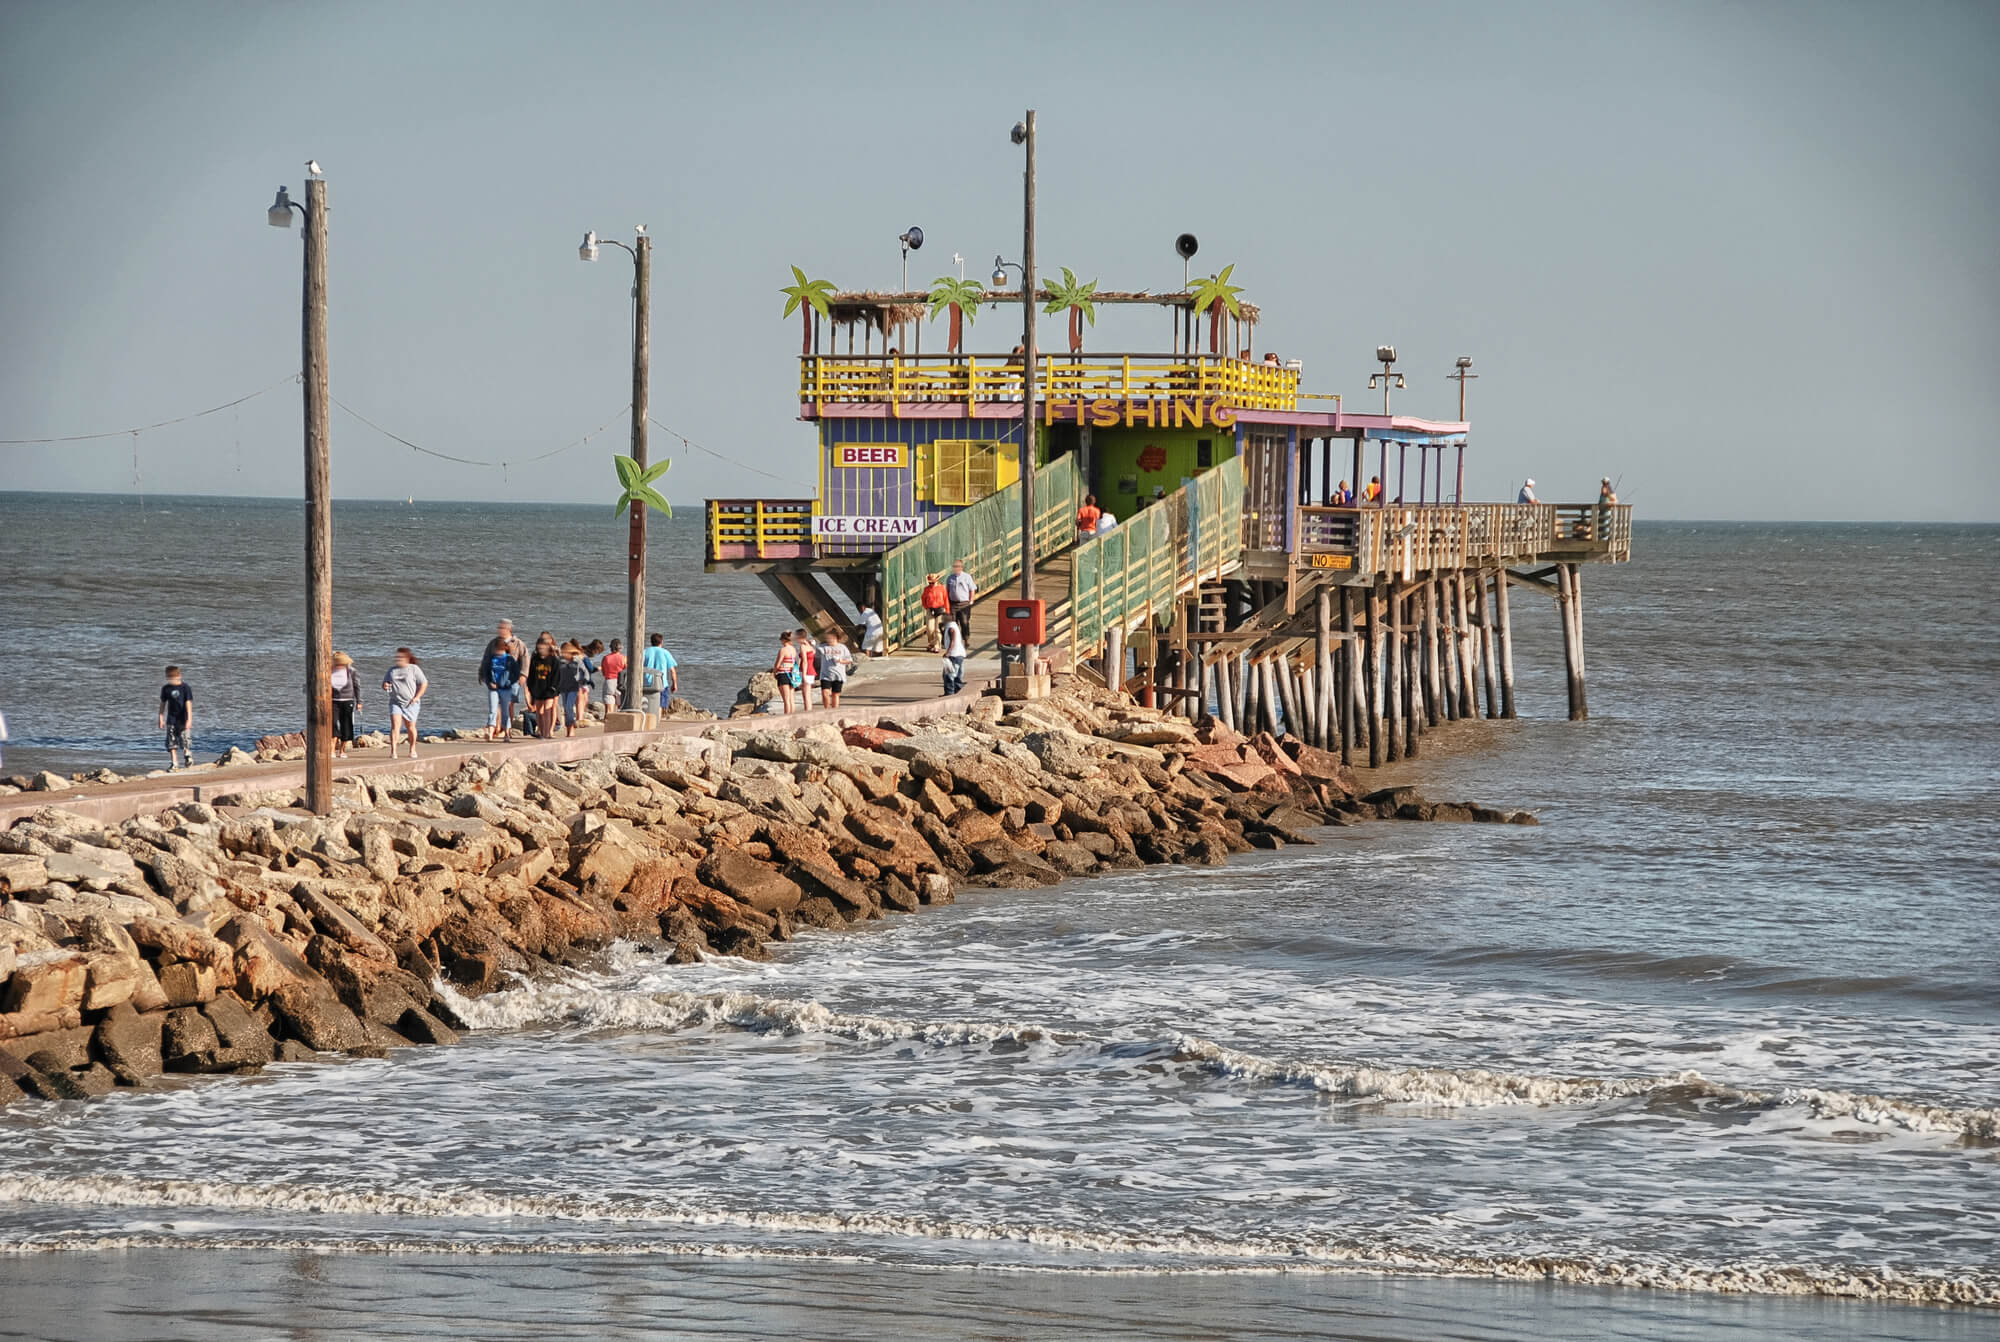 A rocky pier juts out over a brown ocean with a colorful restaurant at the end over the water